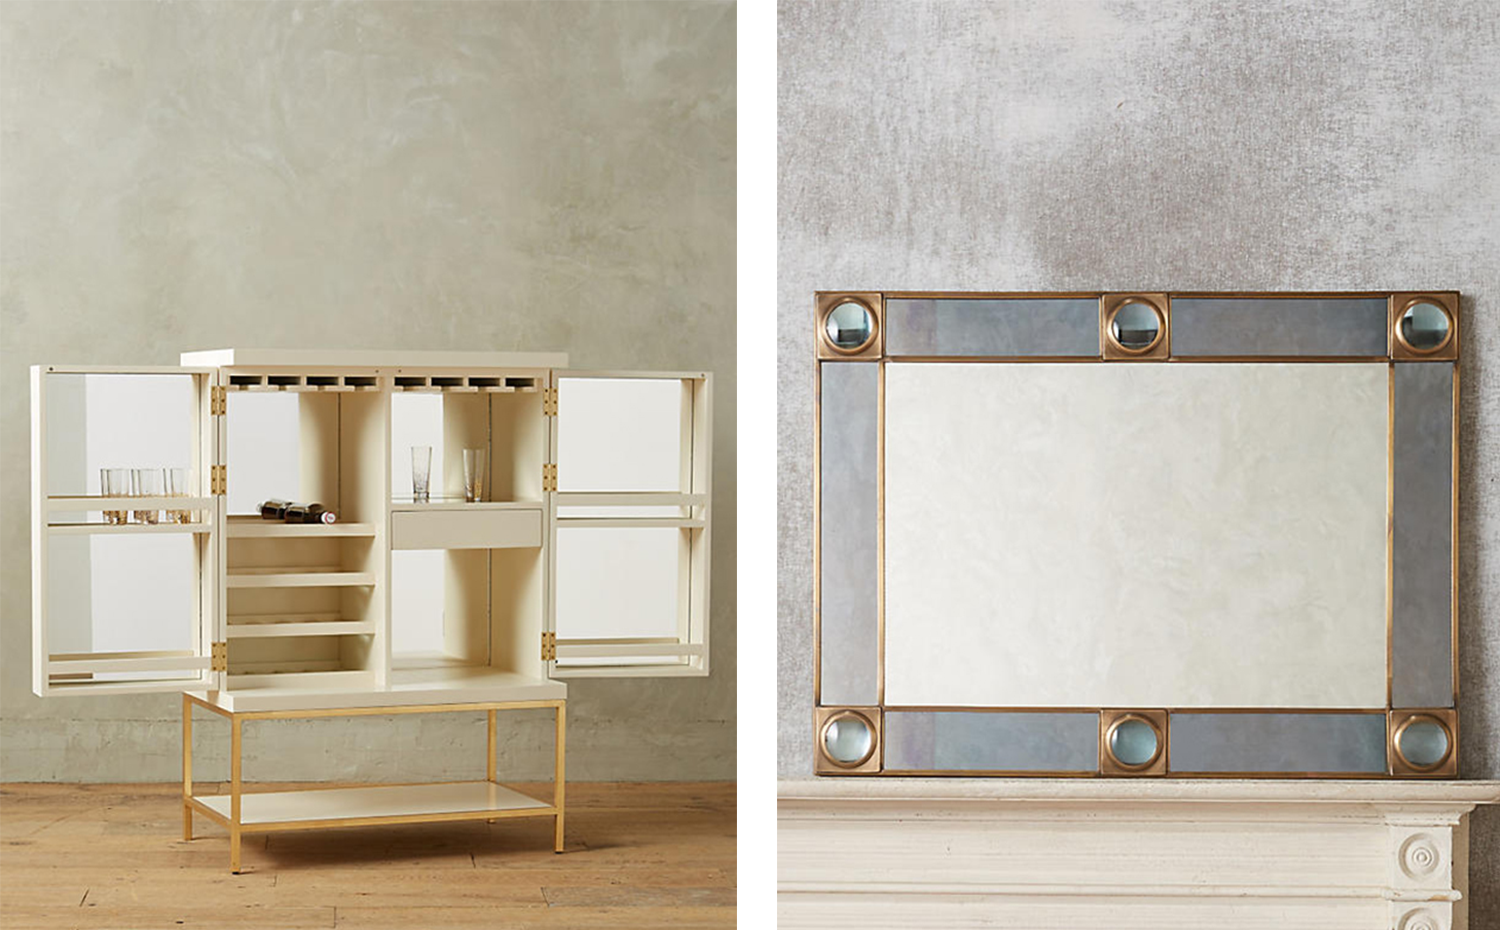 anthropologie. Mueble bar lacado en blanco con estructura dorada y Espejo Telescope, de Anthropologie